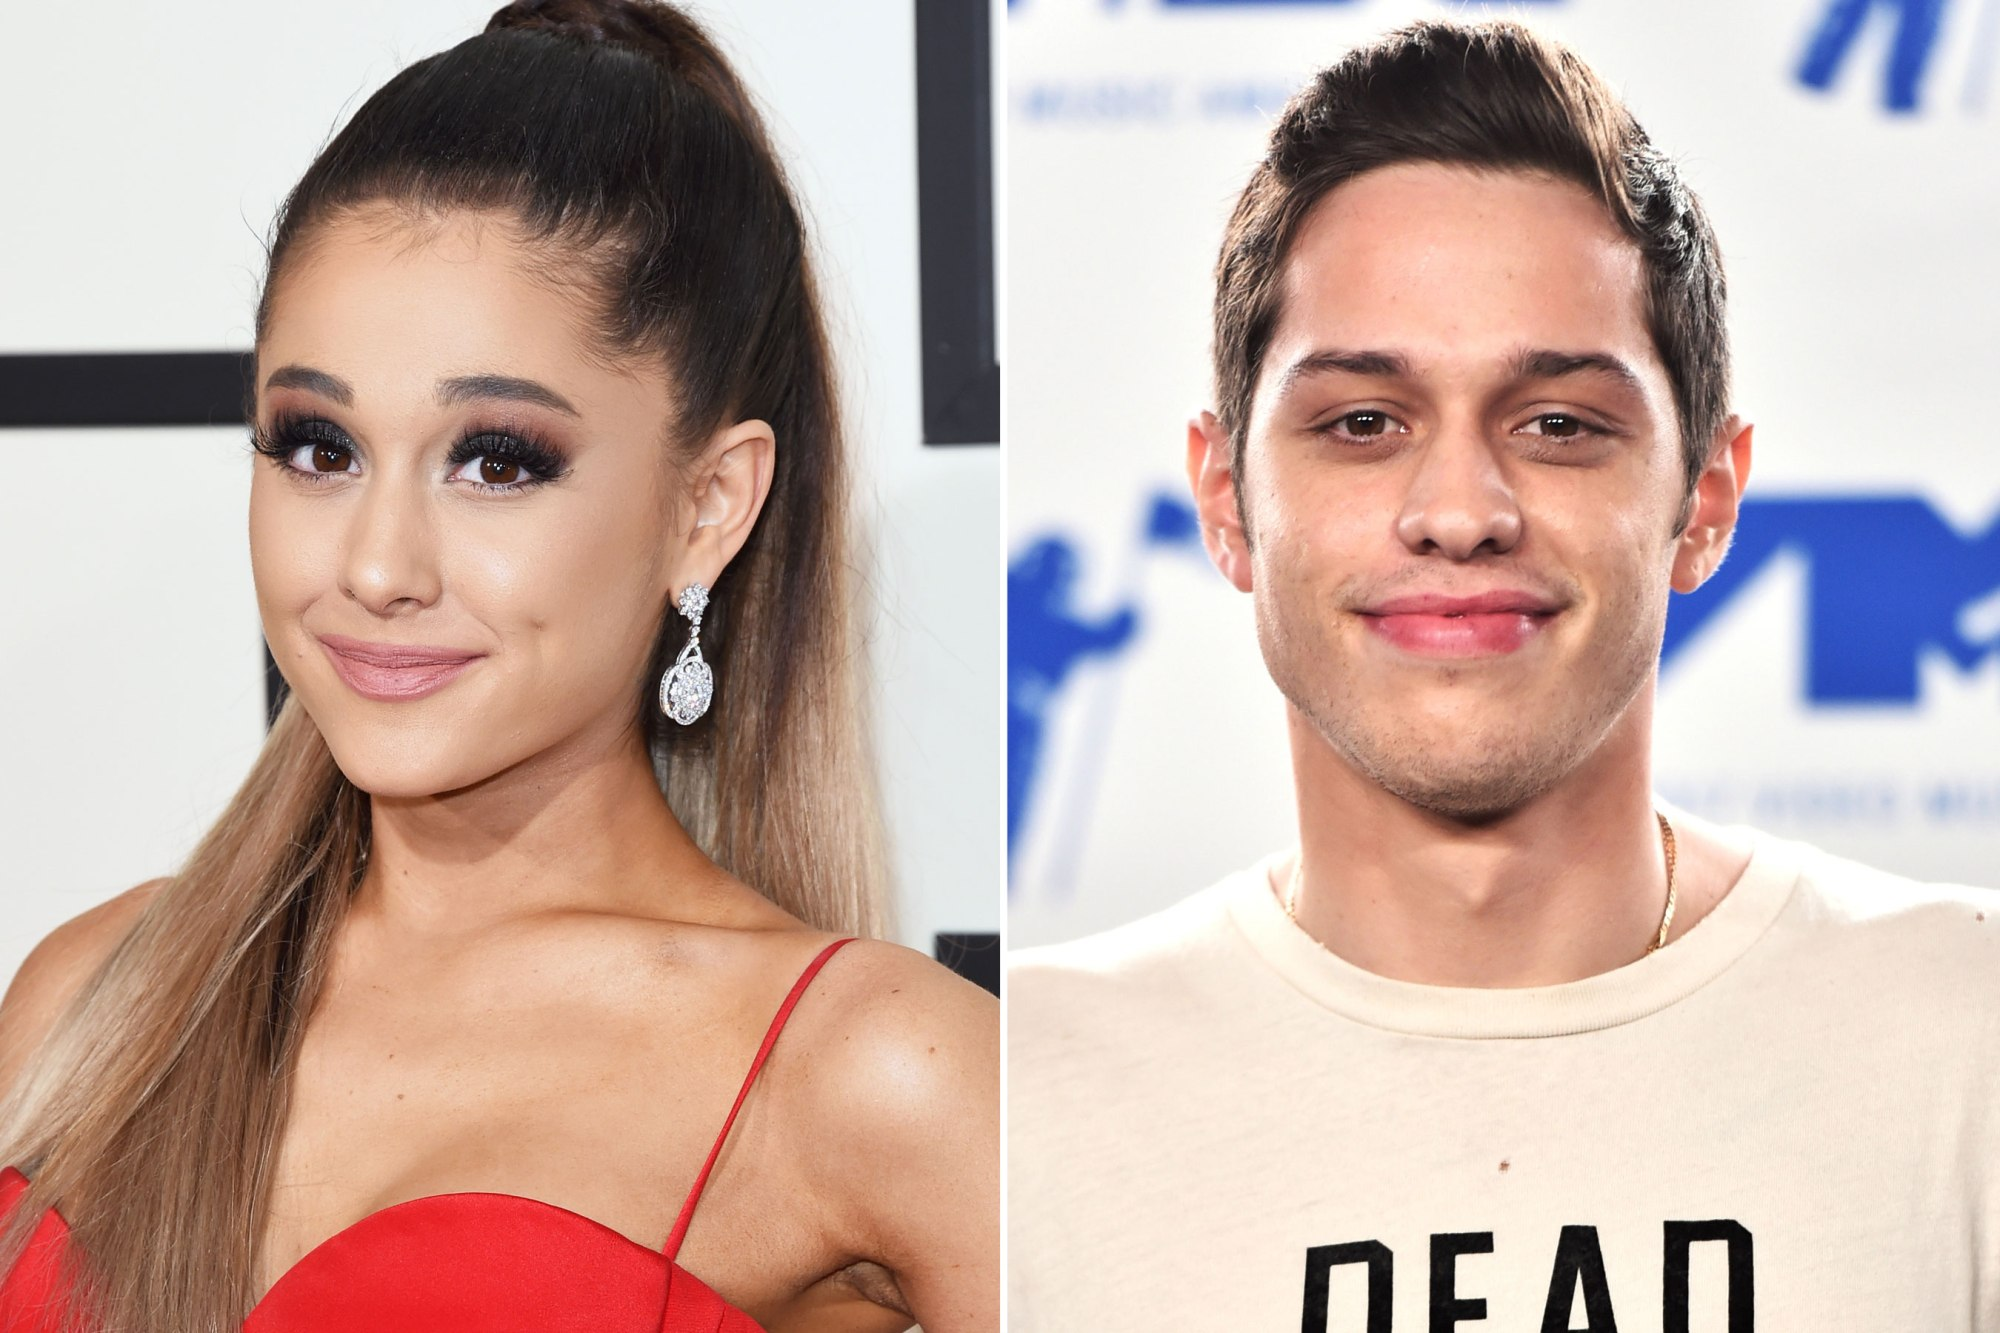 Pete Davidson Leaves Social Media After Disturbing Post